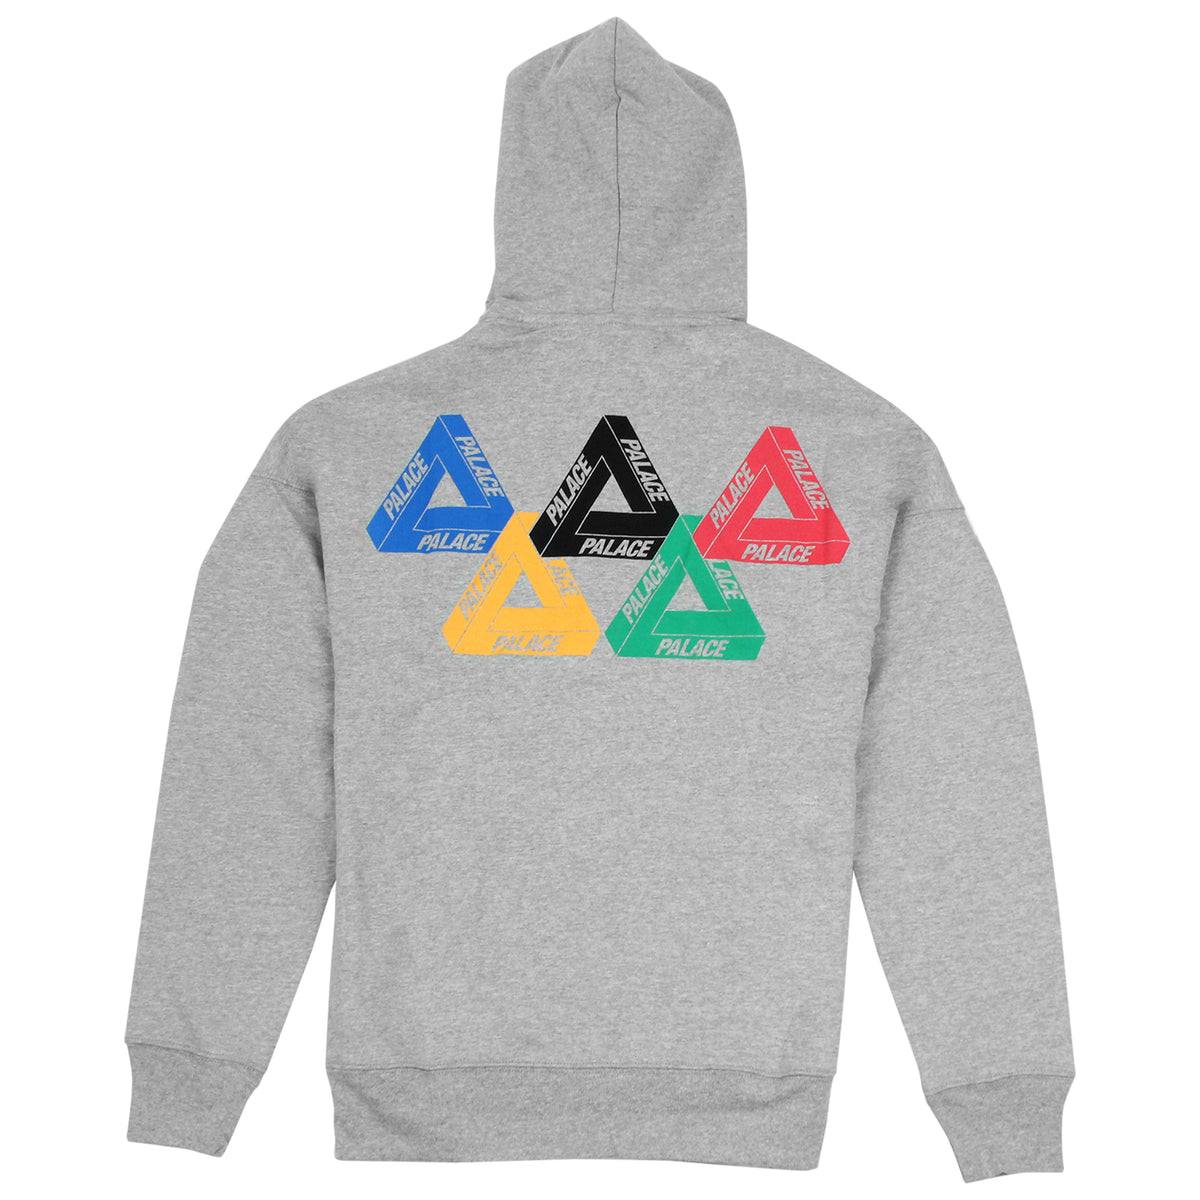 e85b814d1261 Performance Zip Hood in Grey by Palace